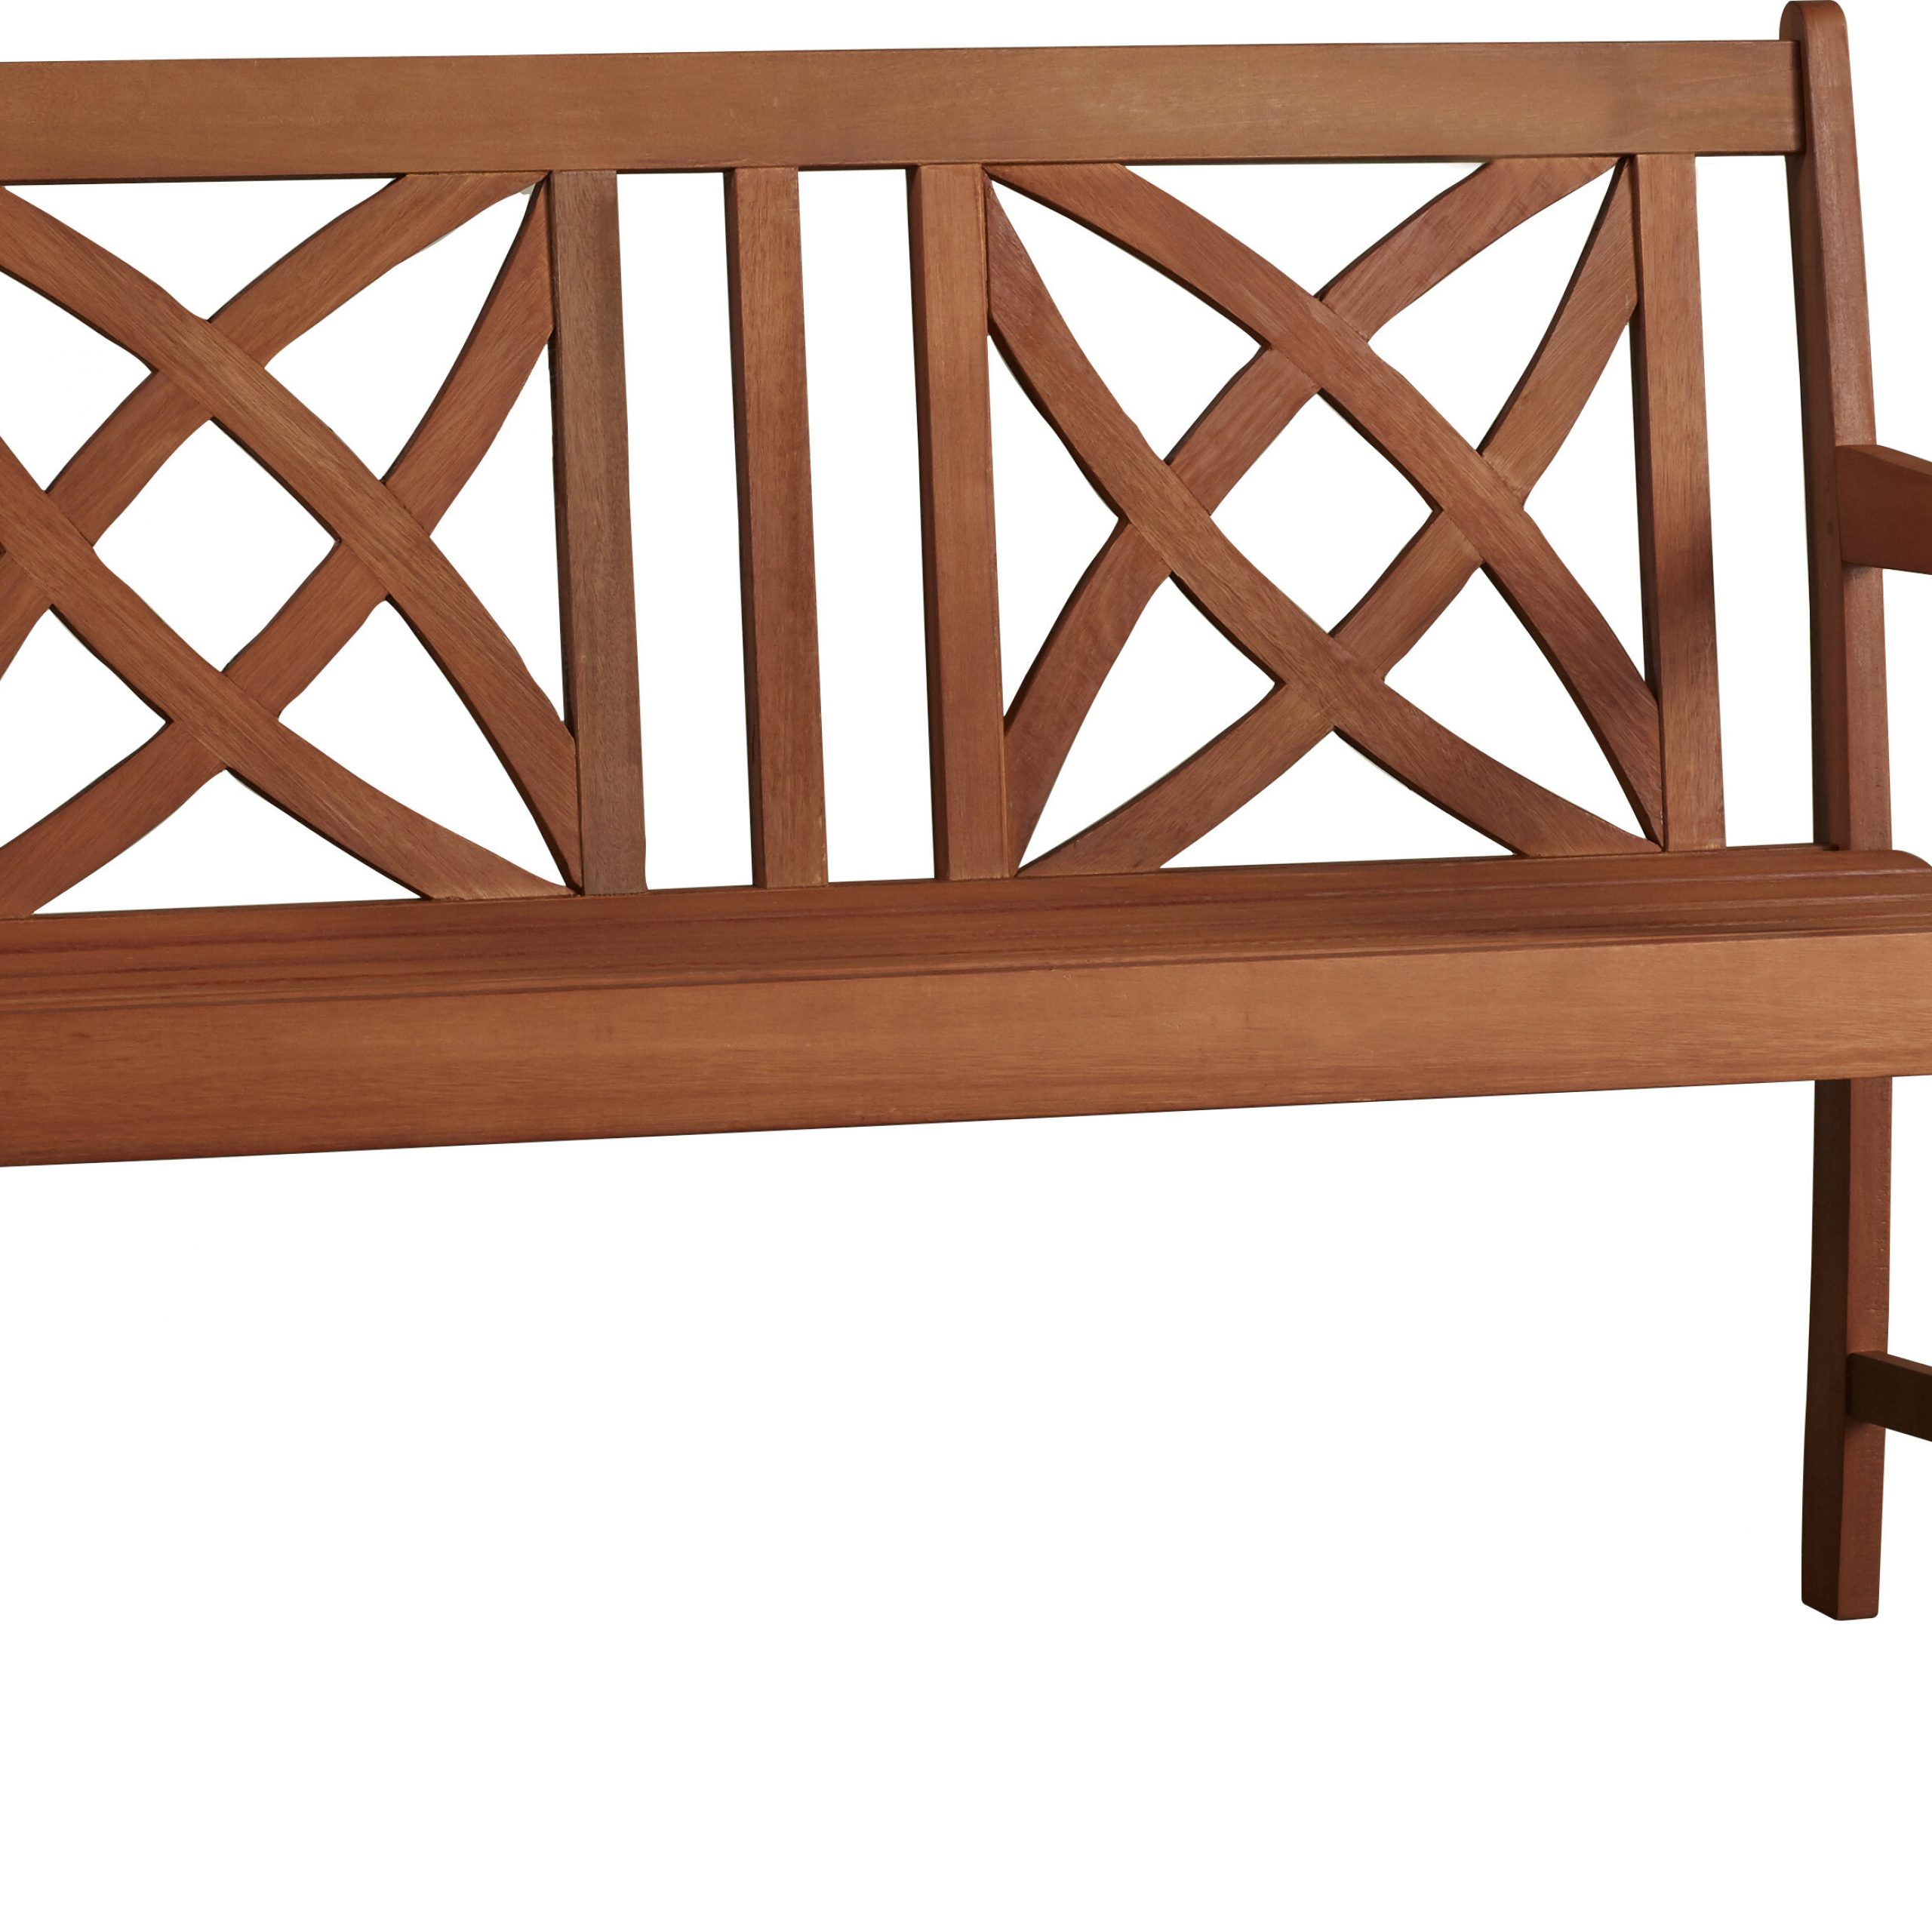 Maliyah Solid Wood Garden Bench For Most Up To Date Alfon Wood Garden Benches (View 5 of 30)